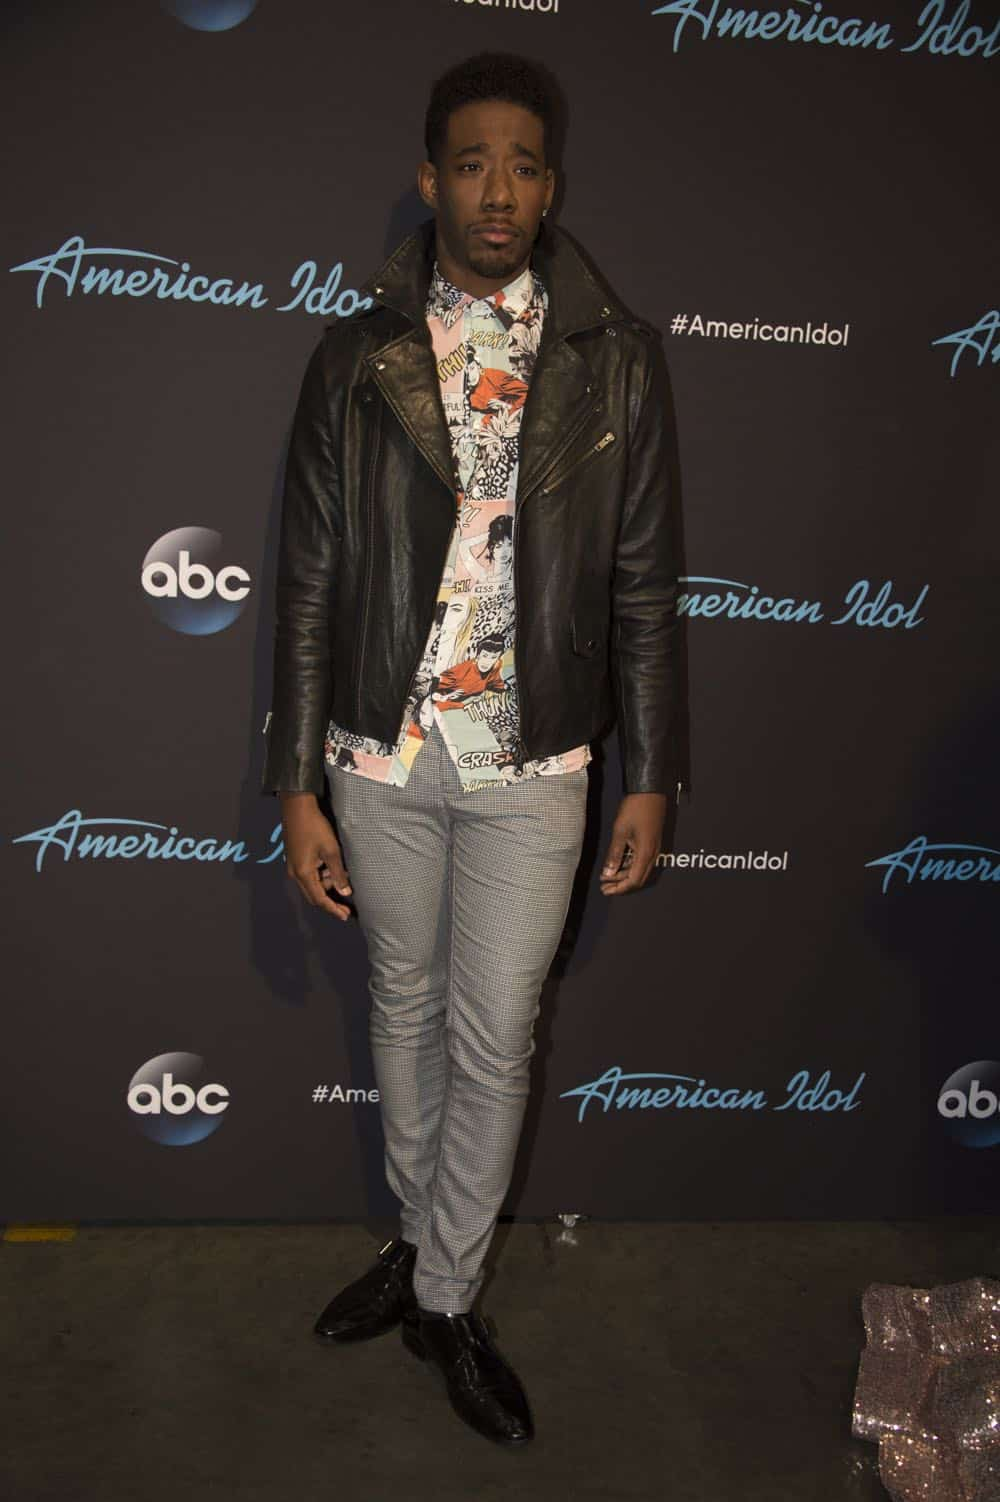 "AMERICAN IDOL - ""114 (Top 10 Reveal)"" - America's votes are in and live shows begin, as the top 14 contestants perform and the top 10 finalists are revealed, as the search for America's next superstar continues on its new home on America's network, The ABC Television Network, MONDAY, APRIL 23 (8:00-10:00 p.m. EDT). (ABC/Eric McCandless) MARCIO DONALDSON"